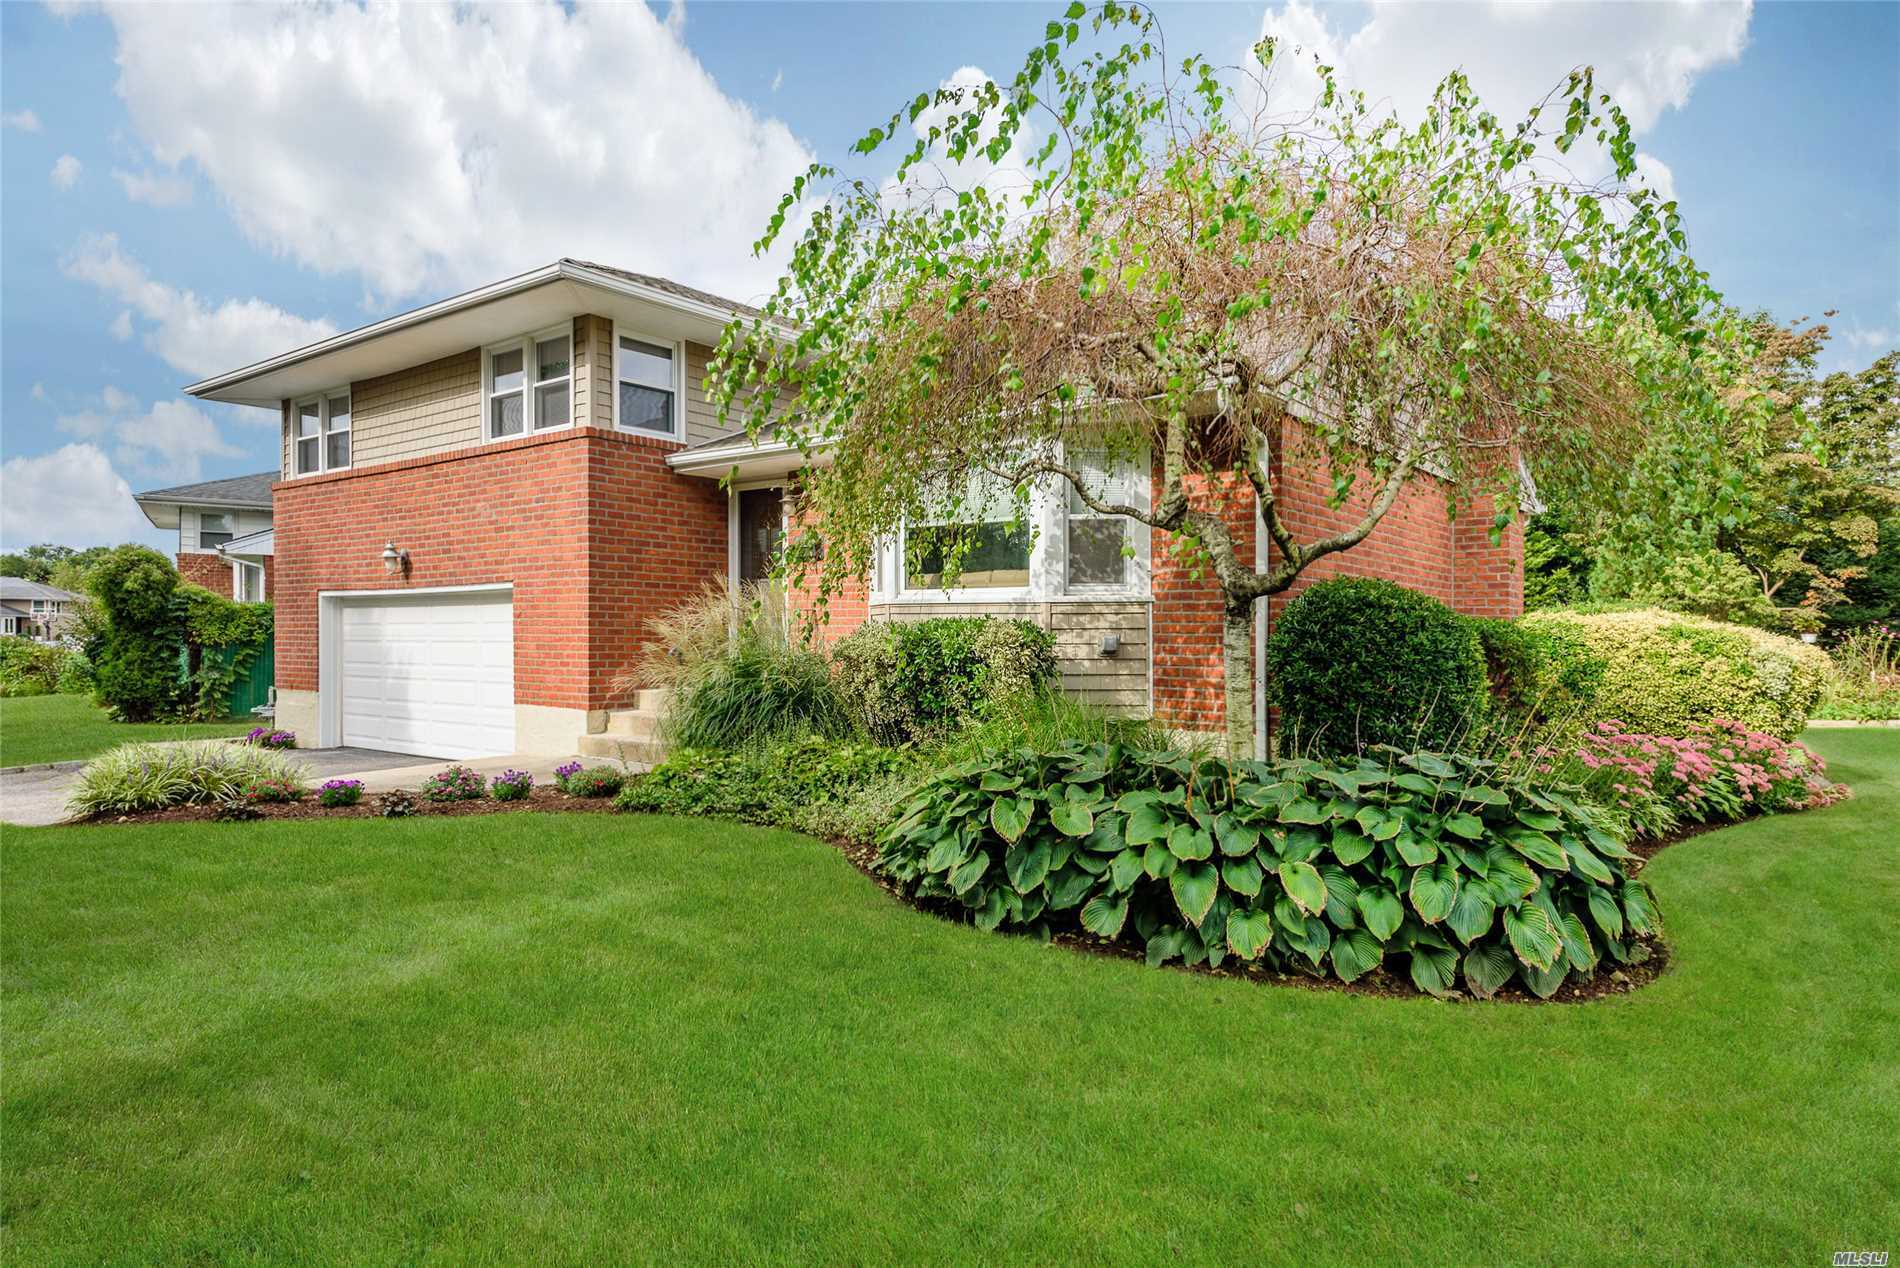 Beautifully Renovated Stylish Split Mid-Block Tree-Lined Location Lush Deep Property. Features 4/3 Bedrooms + 2.5 Baths + Designer Eat In Kitchen 2017 + Master Bath & Powder Room 2018 + 2nd Full Bath Updates 2017 + Huge Den/Bedroom With Out Side Entrance + Lovely Renovated Habitable Finished Basement Great For Extended Family + New Roof + Siding + Brick Repointed + Soffits + Gutters 2017 + Some New Windows 2017 + Cac 2010 + Boiler 2007 + 200 Amp + 2 Car Attached Garage. Solid As A Rock!